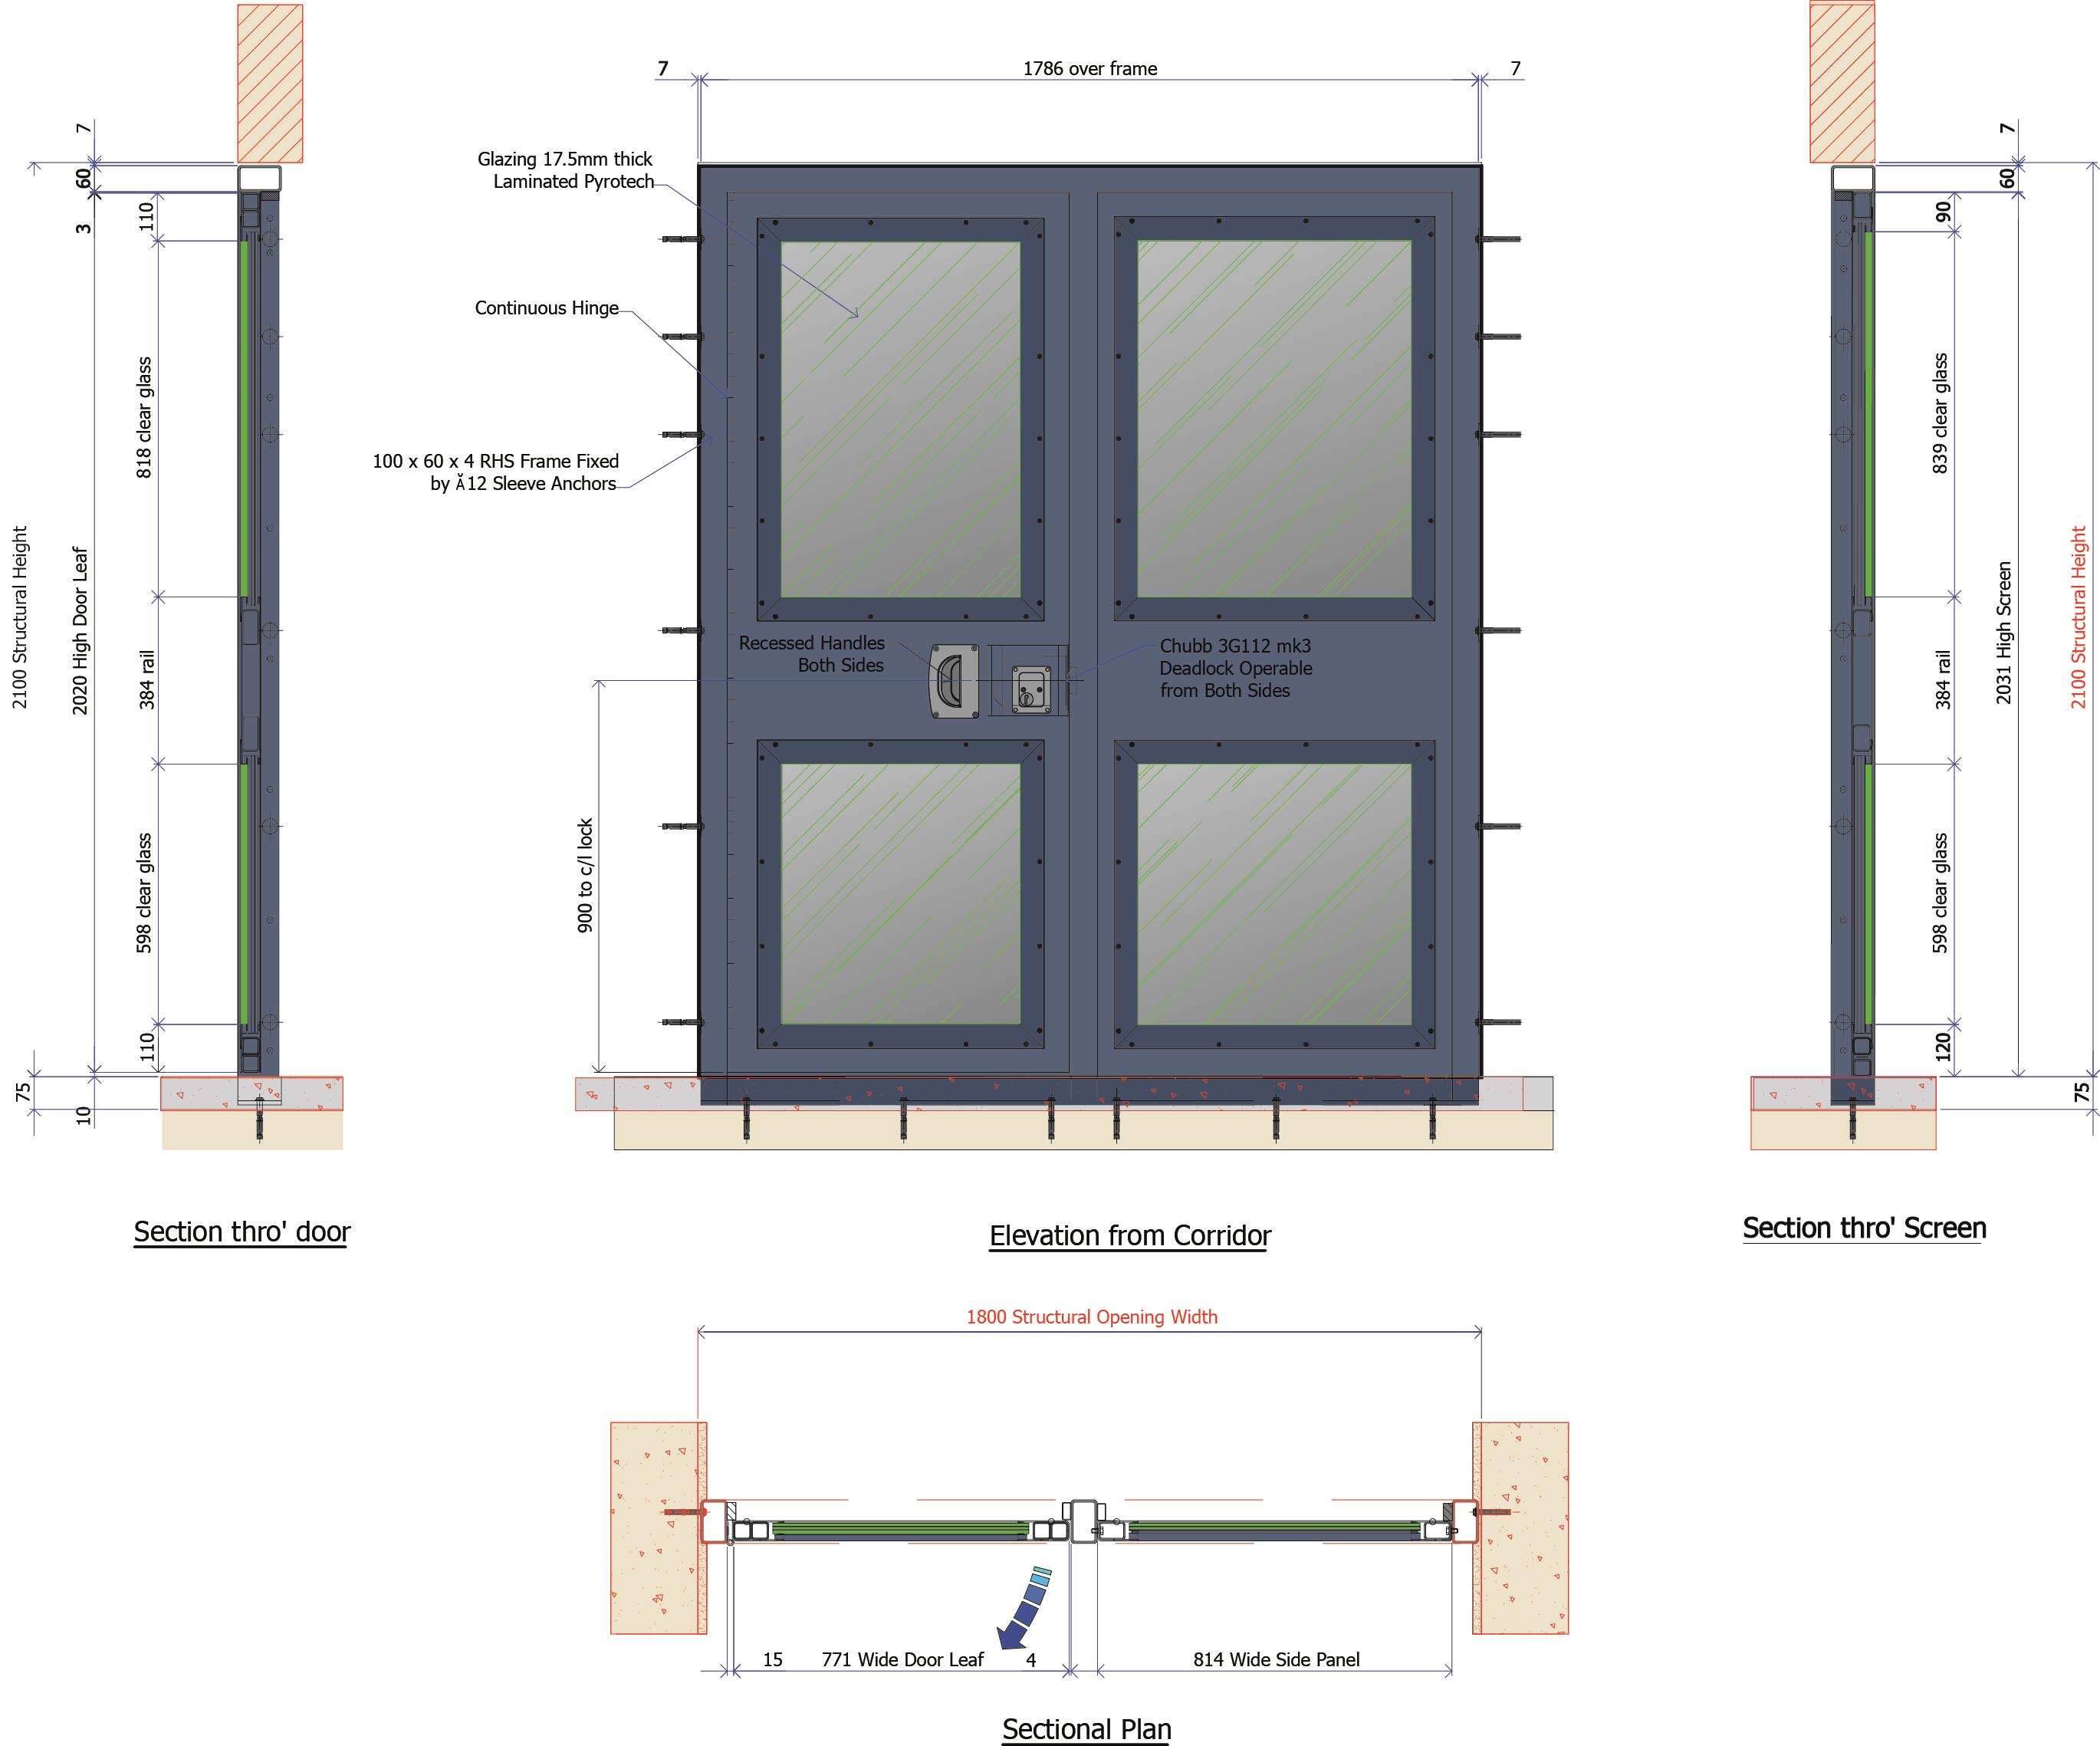 9D017C - Fully Glazed Corridor Fire Door 60 min Integrity